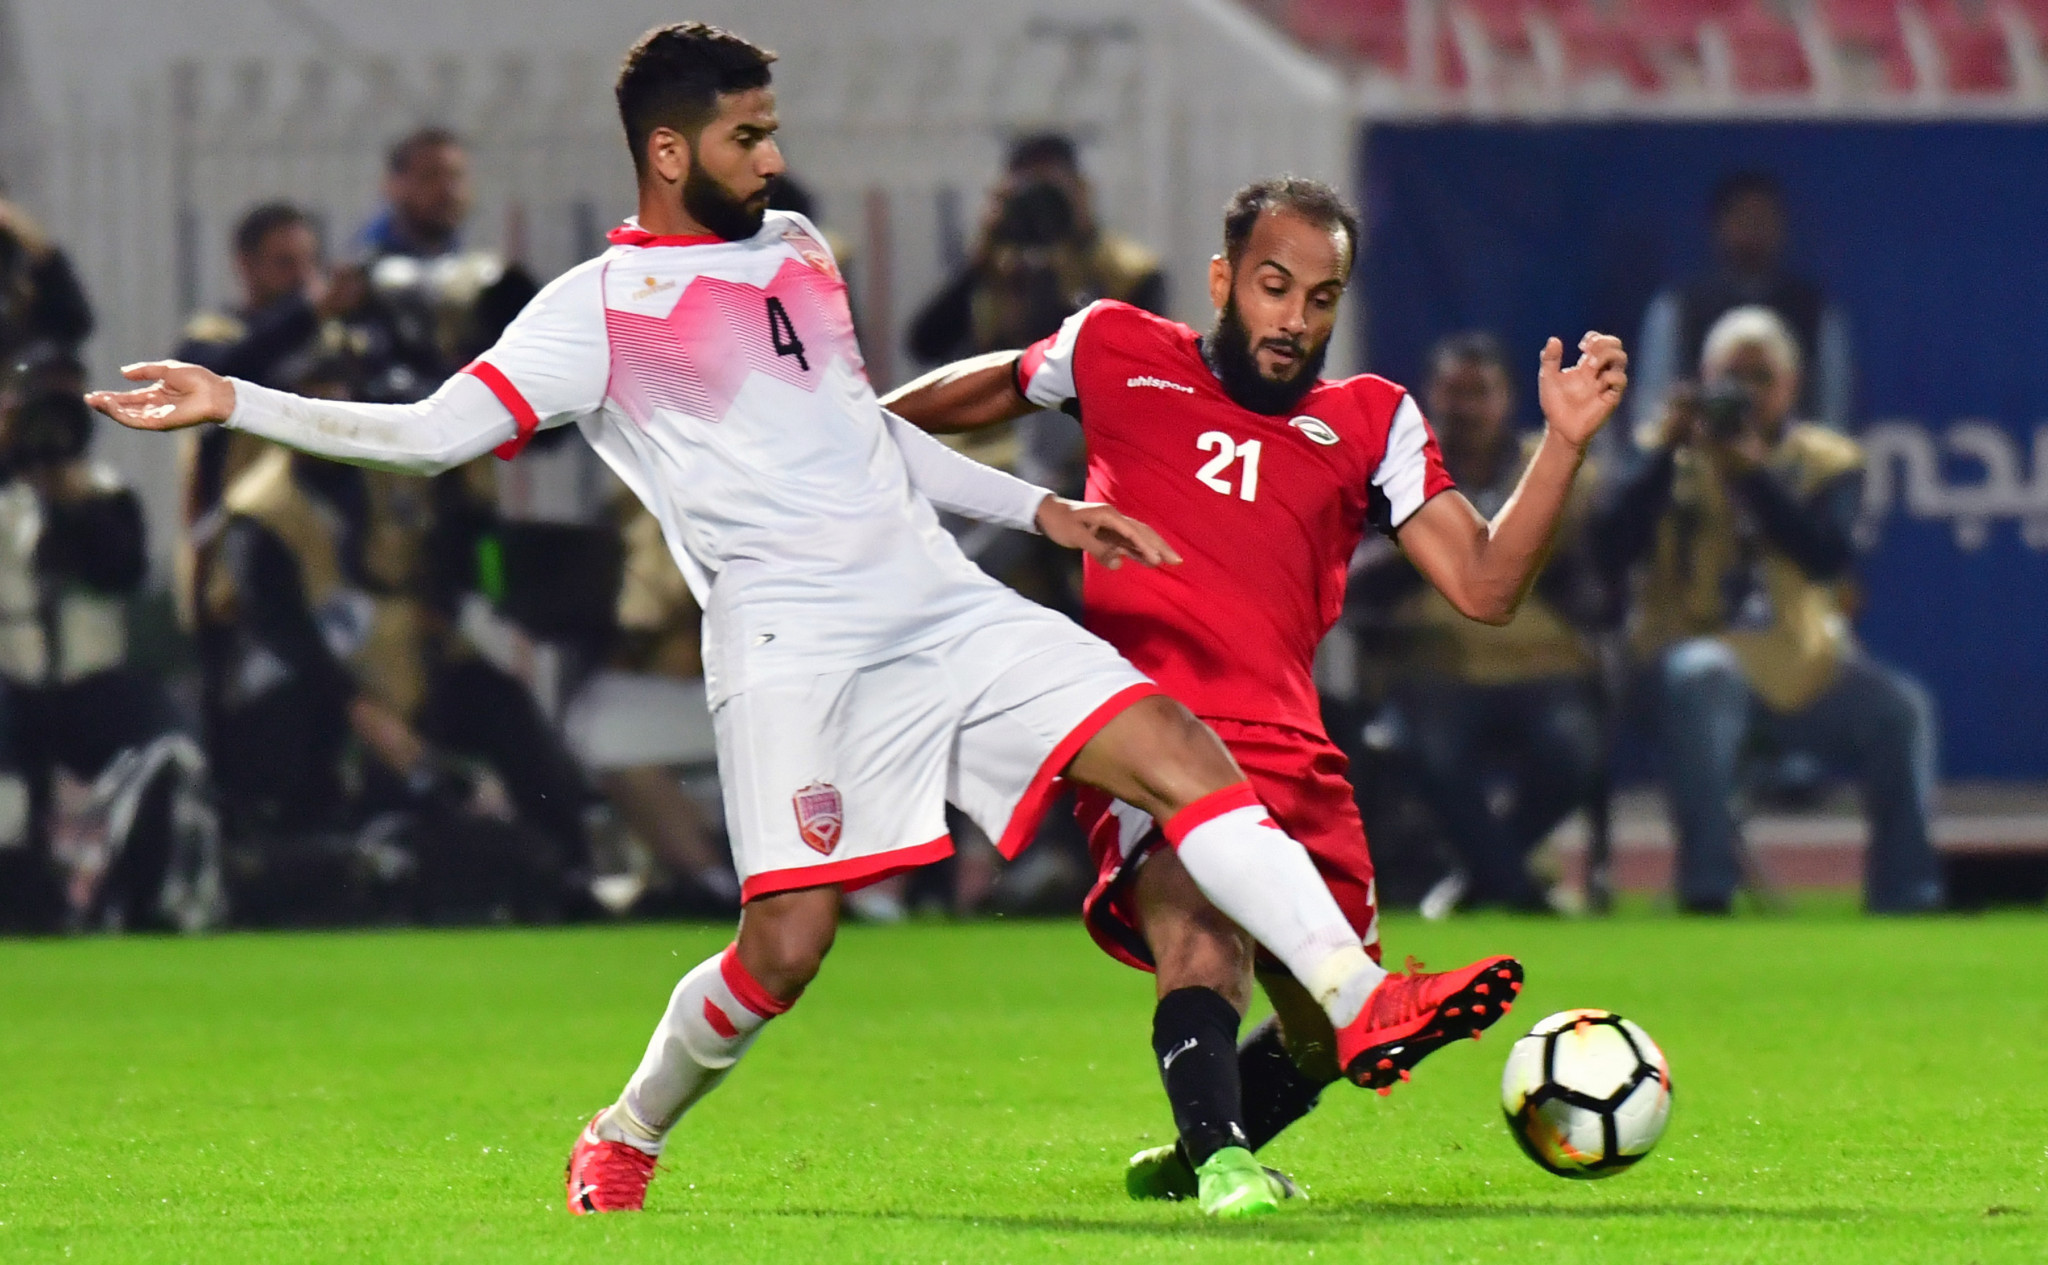 Iraq produce shock at Gulf Cup with victory over holders Qatar